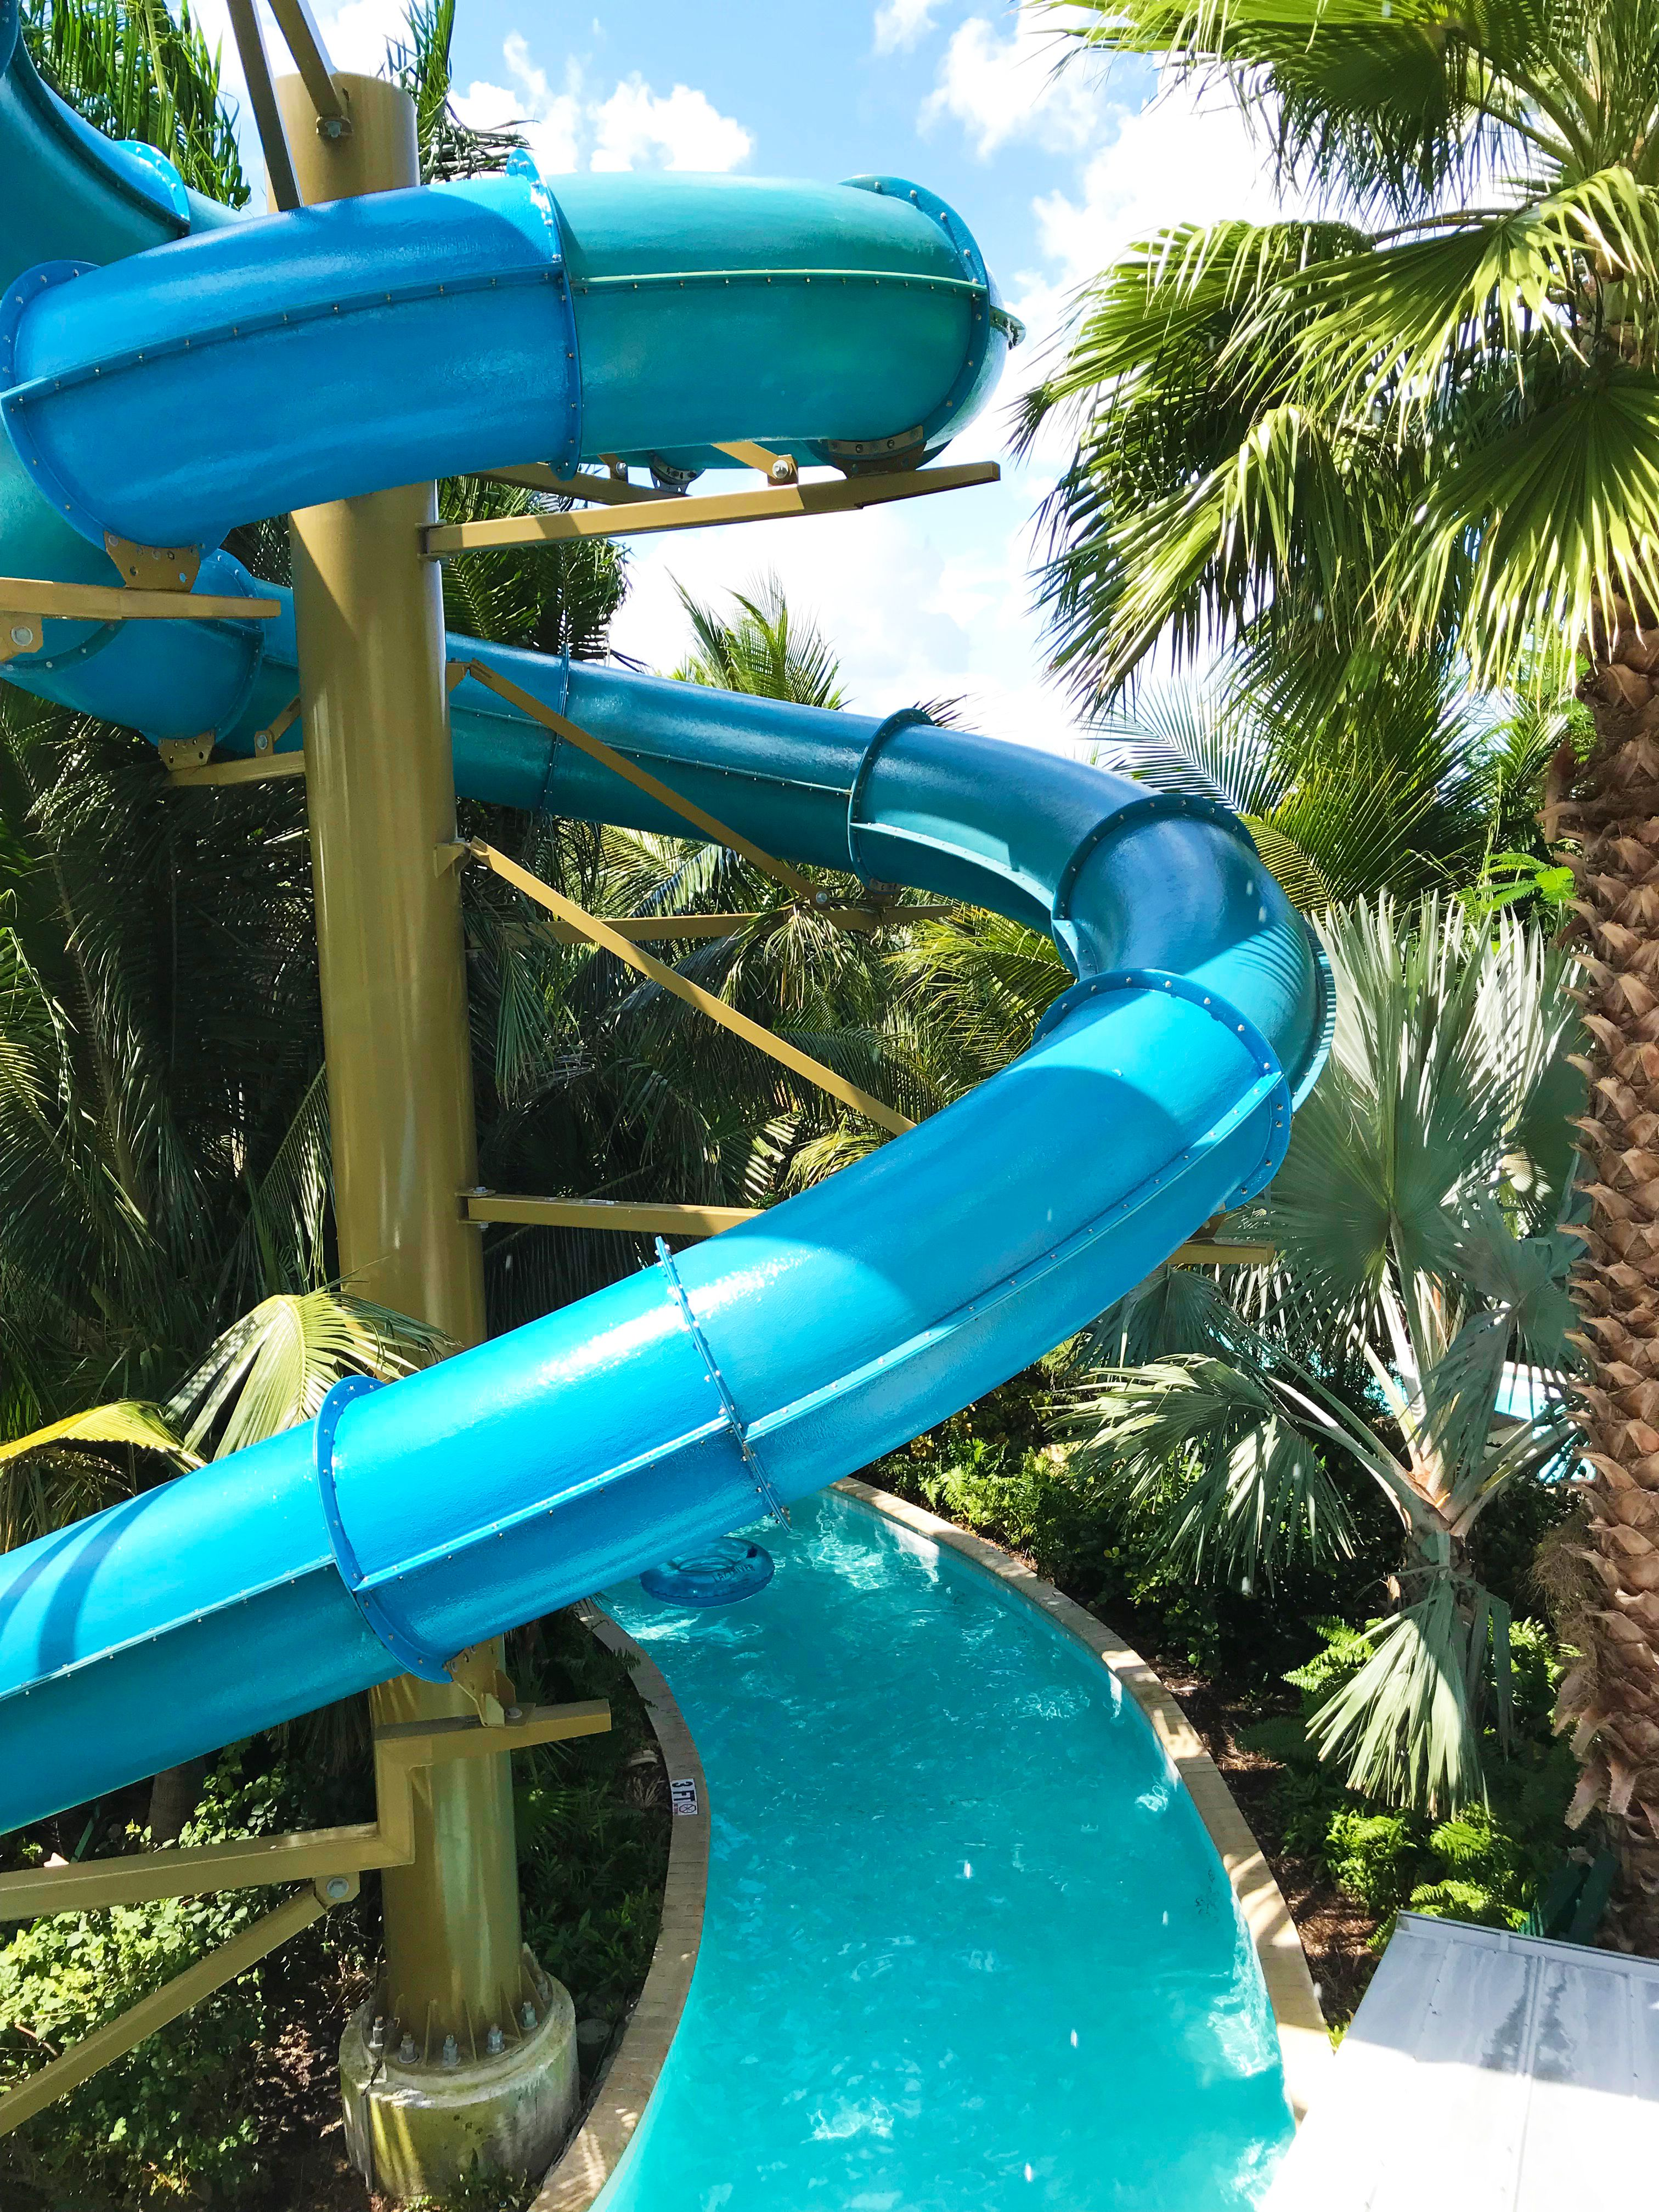 One Of The Massive New Waterslides And The Lazy River At